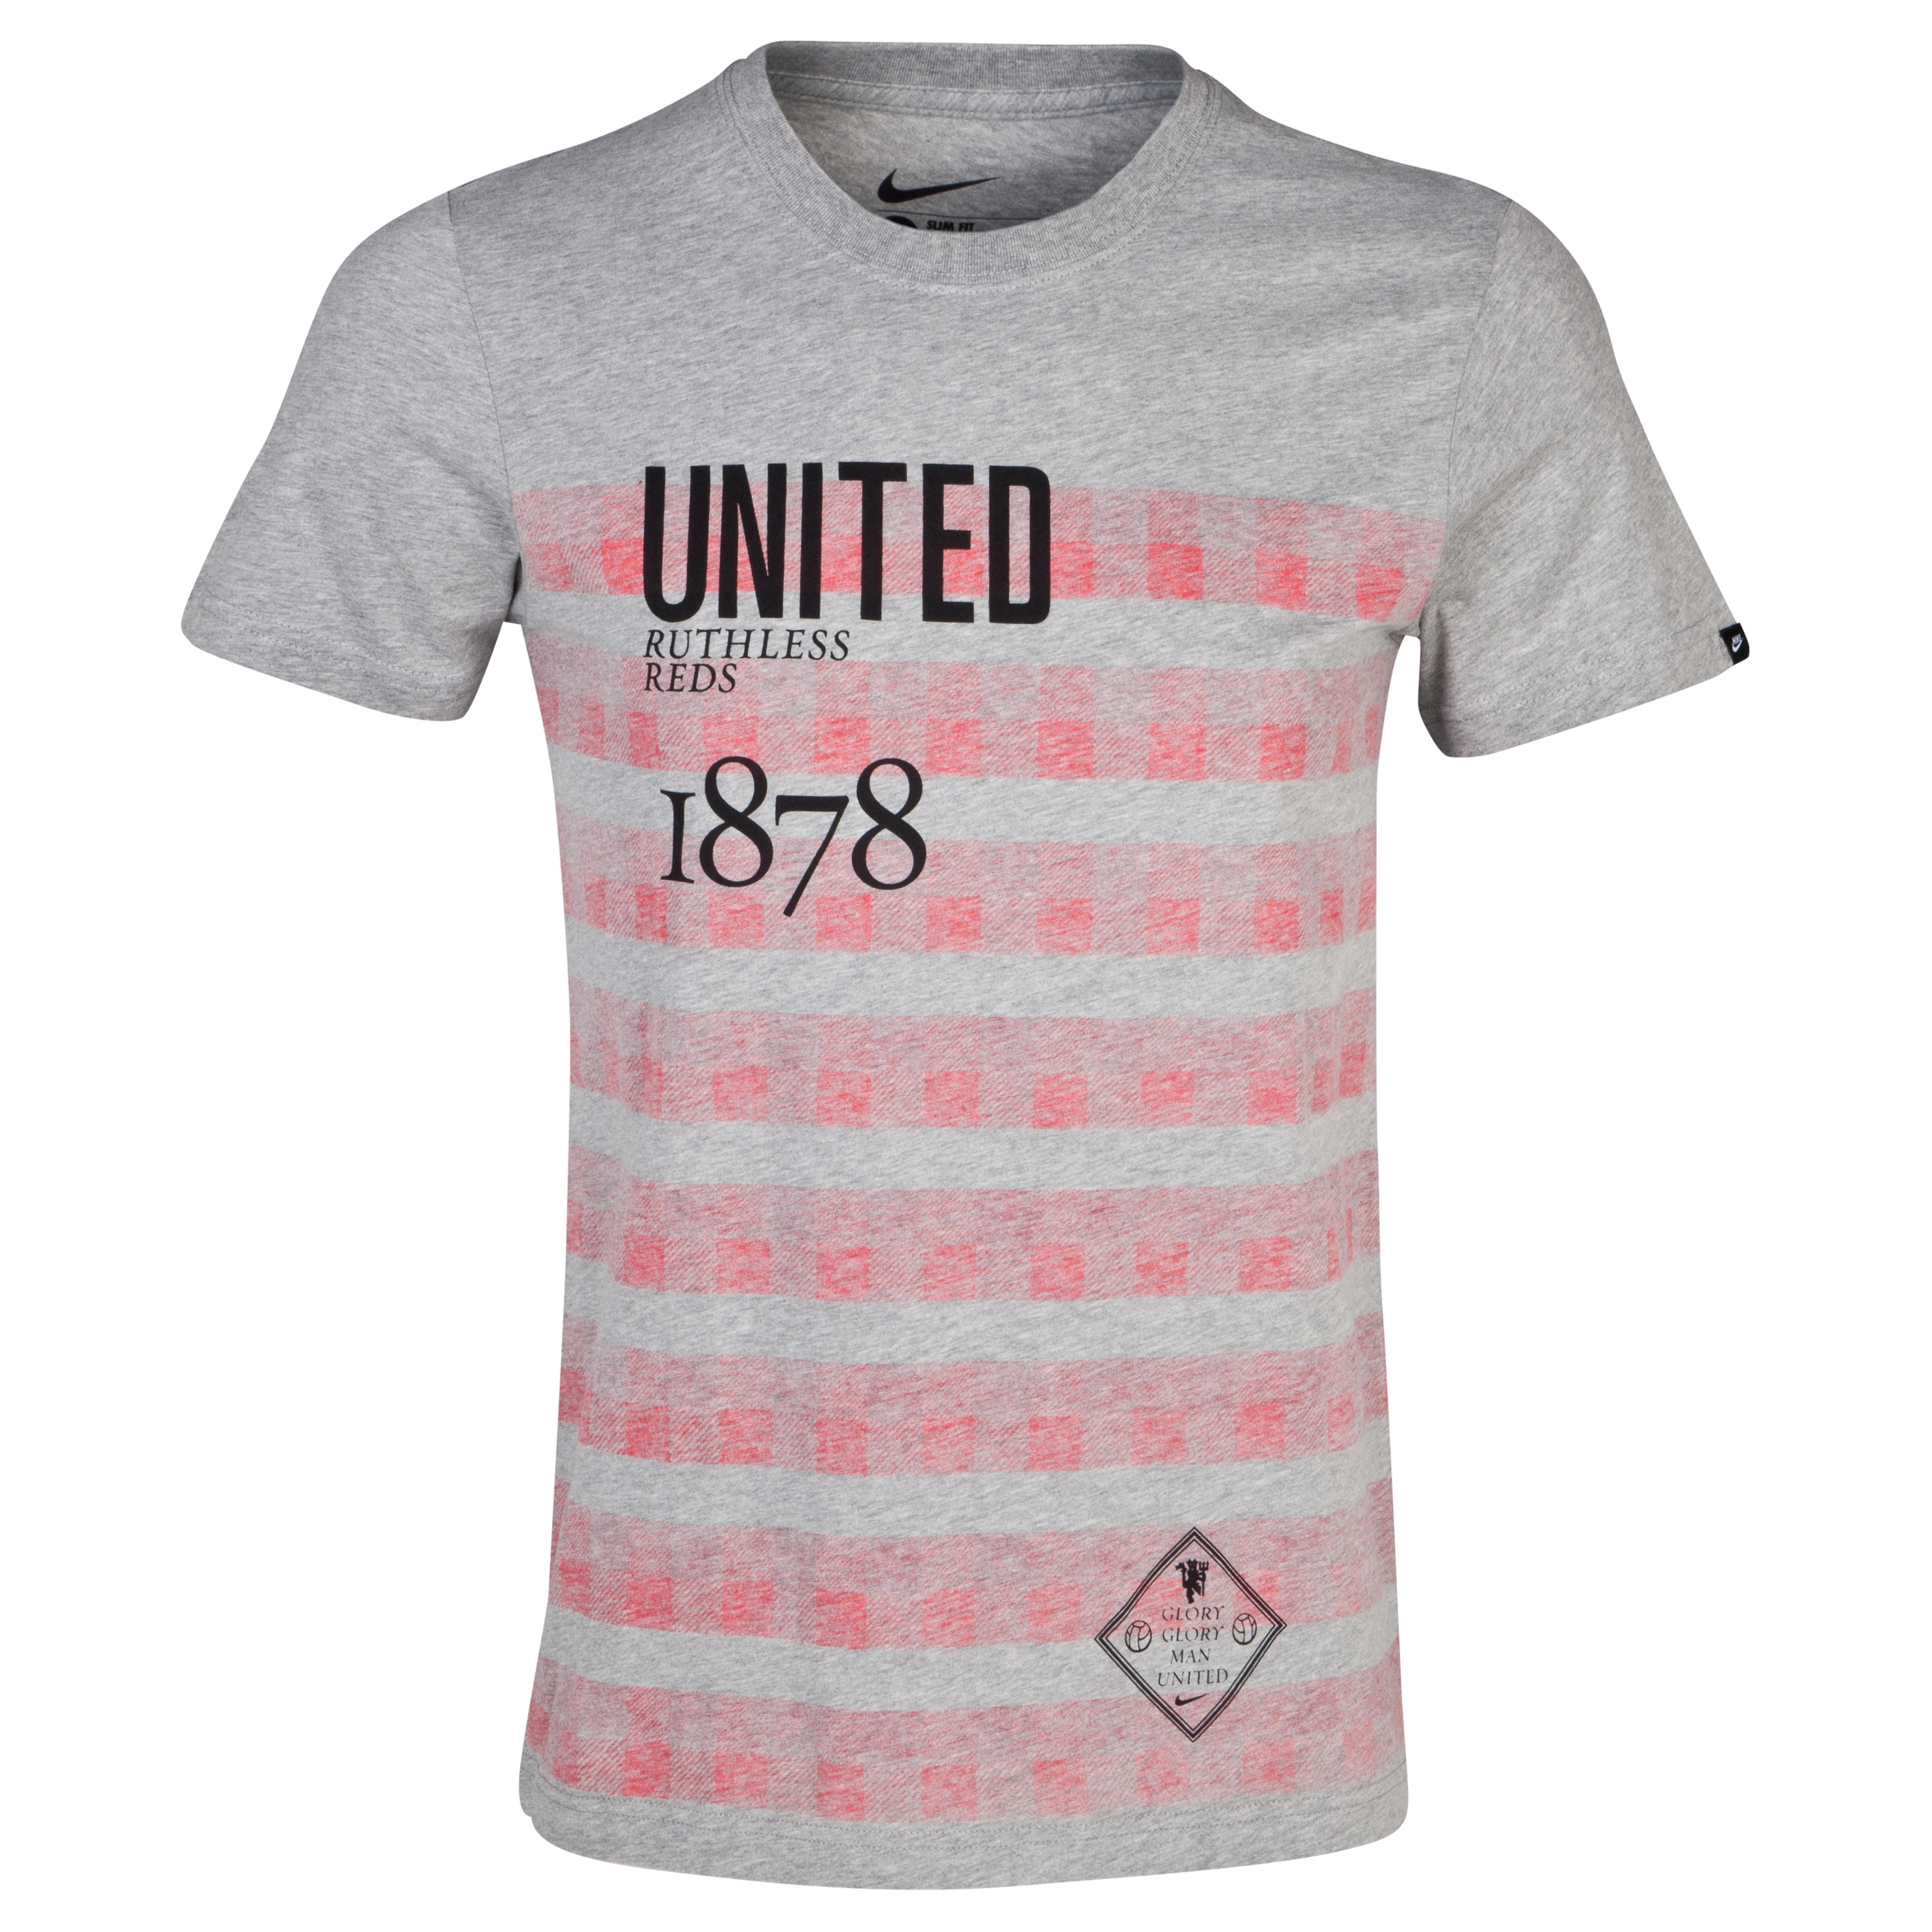 Manchester United Authentic T-Shirt - Dark Grey Heather